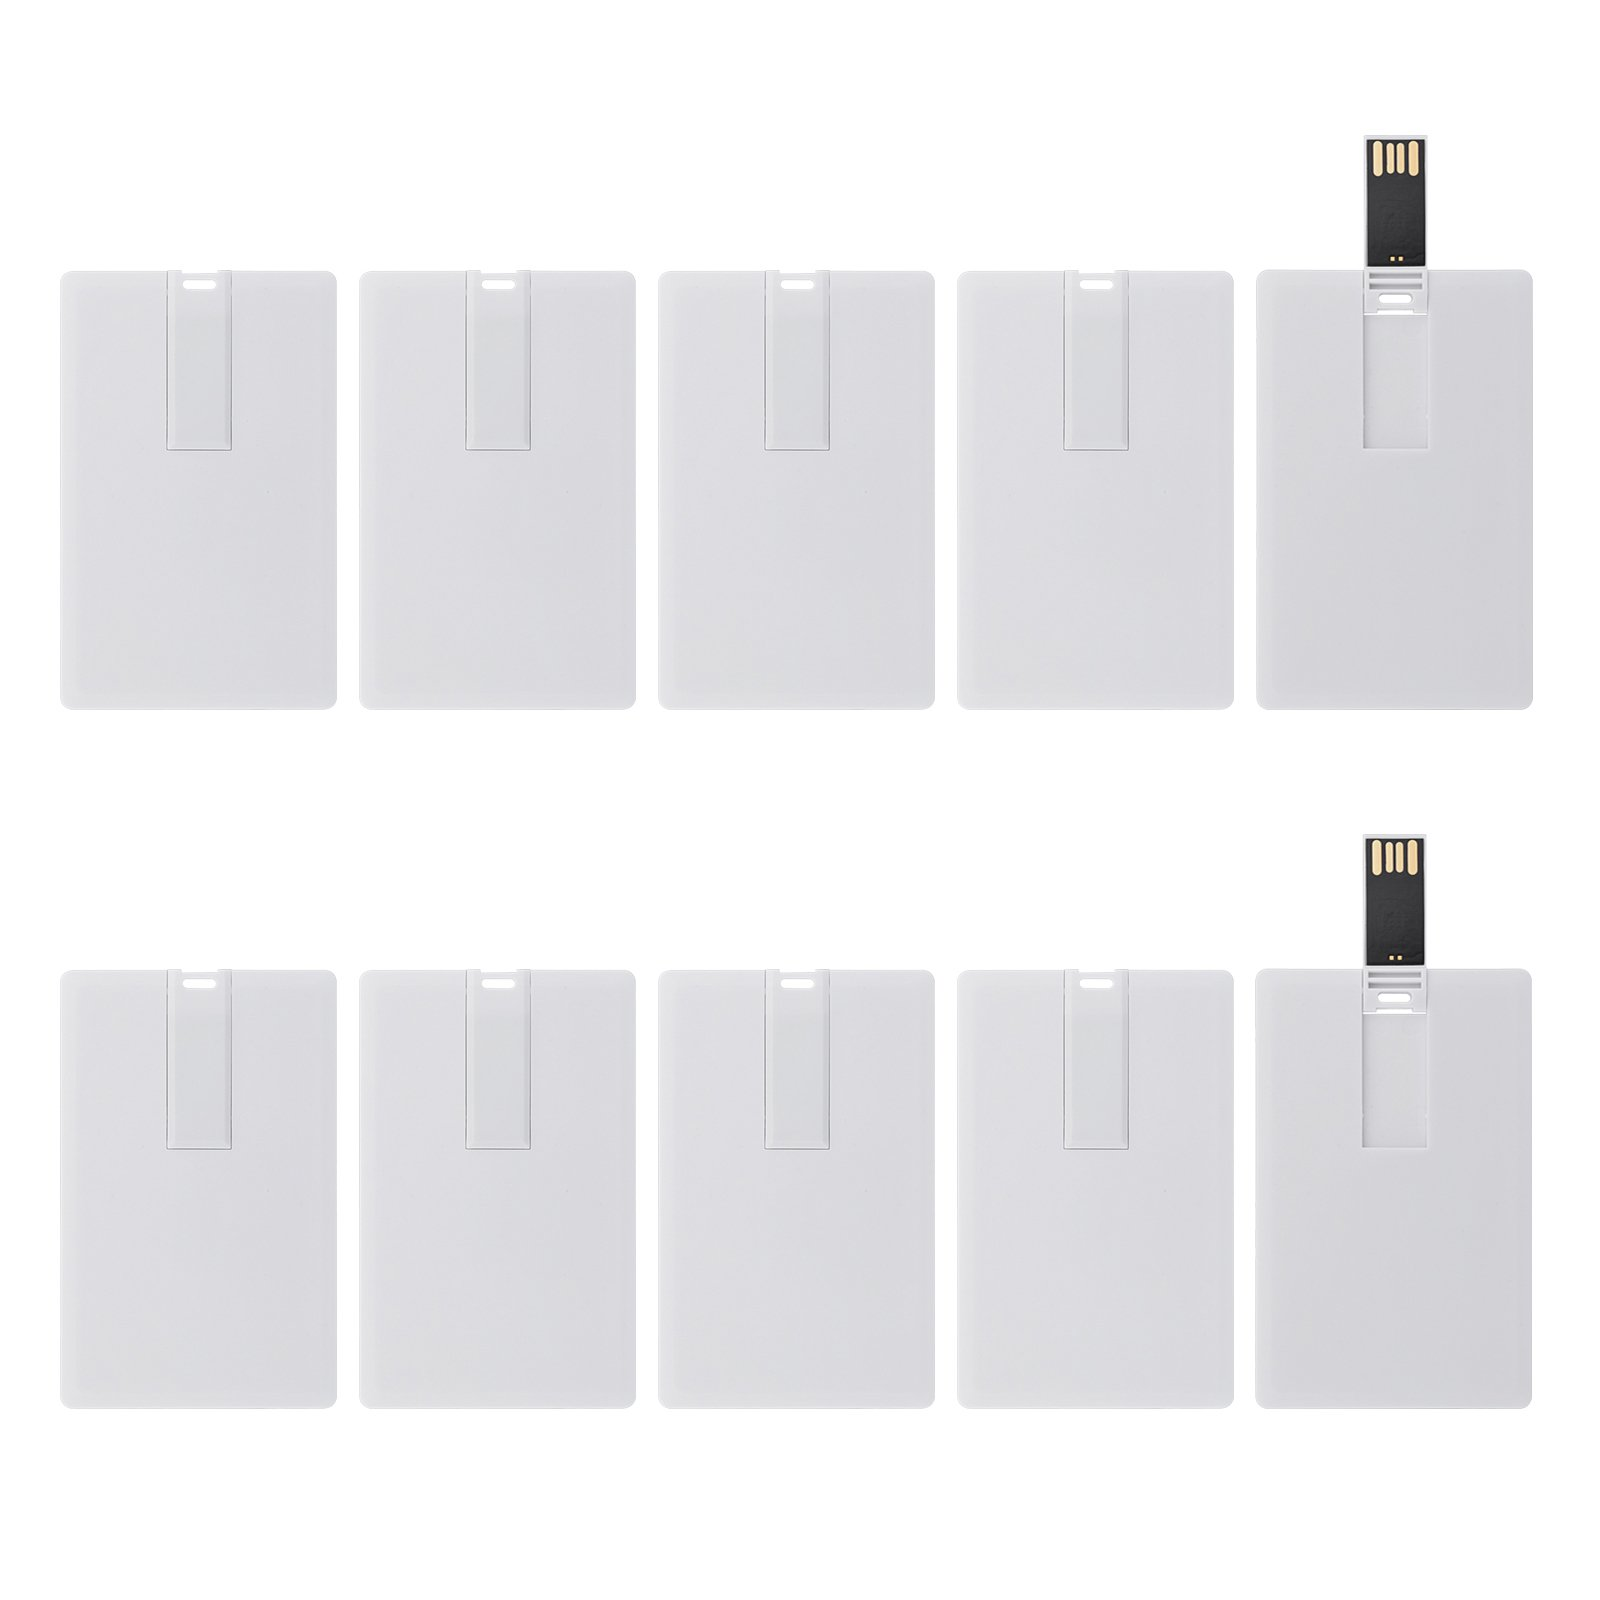 KEXIN Bulk Flash Drive 2G USB Business Card Credit Card Bank Card Shape Flash Drive Memory Stick Key Credit USB Drive - Bulk USB Flash Drives - 2GB 20 PCS (White Card)